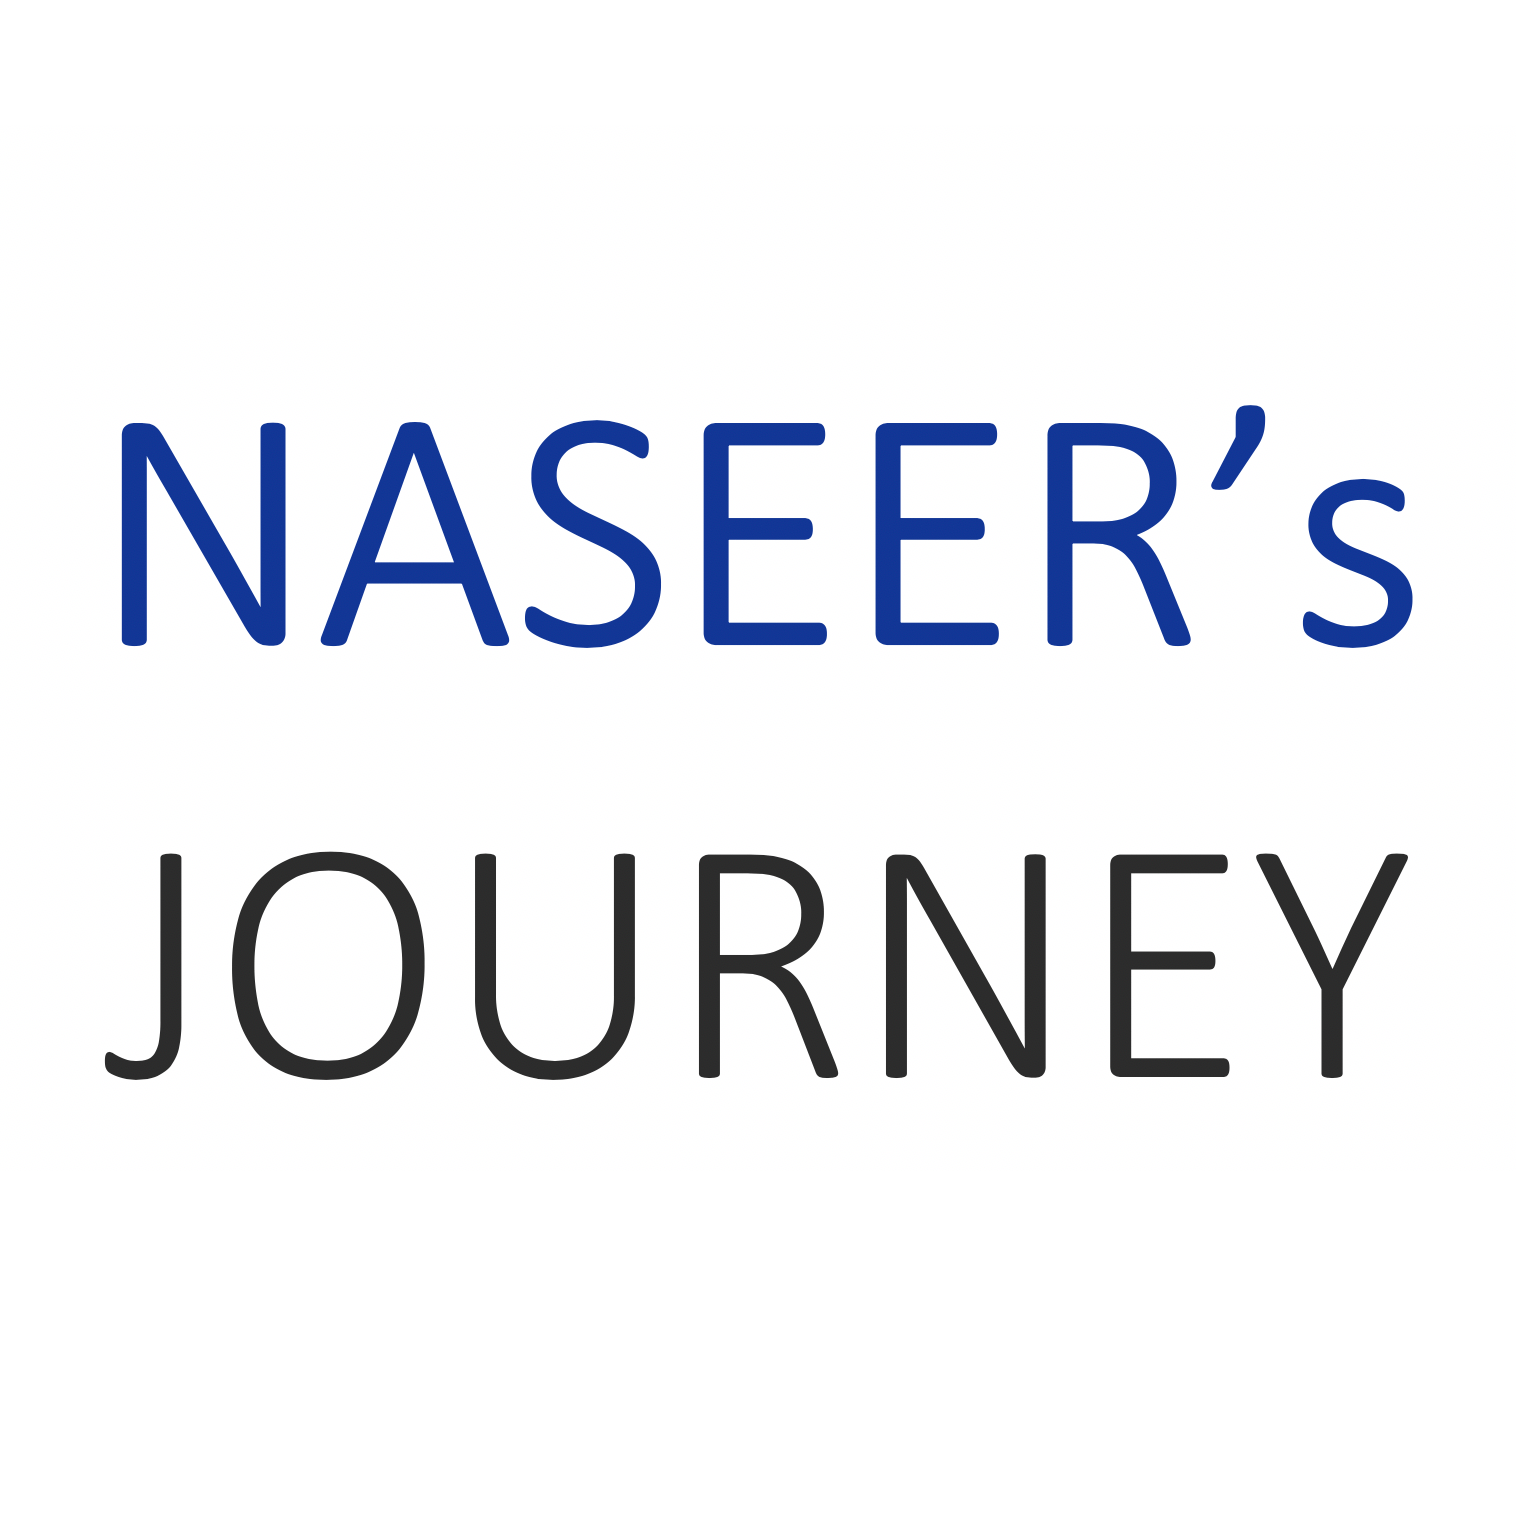 Studying for PLAB 1 – Naseer's Journey